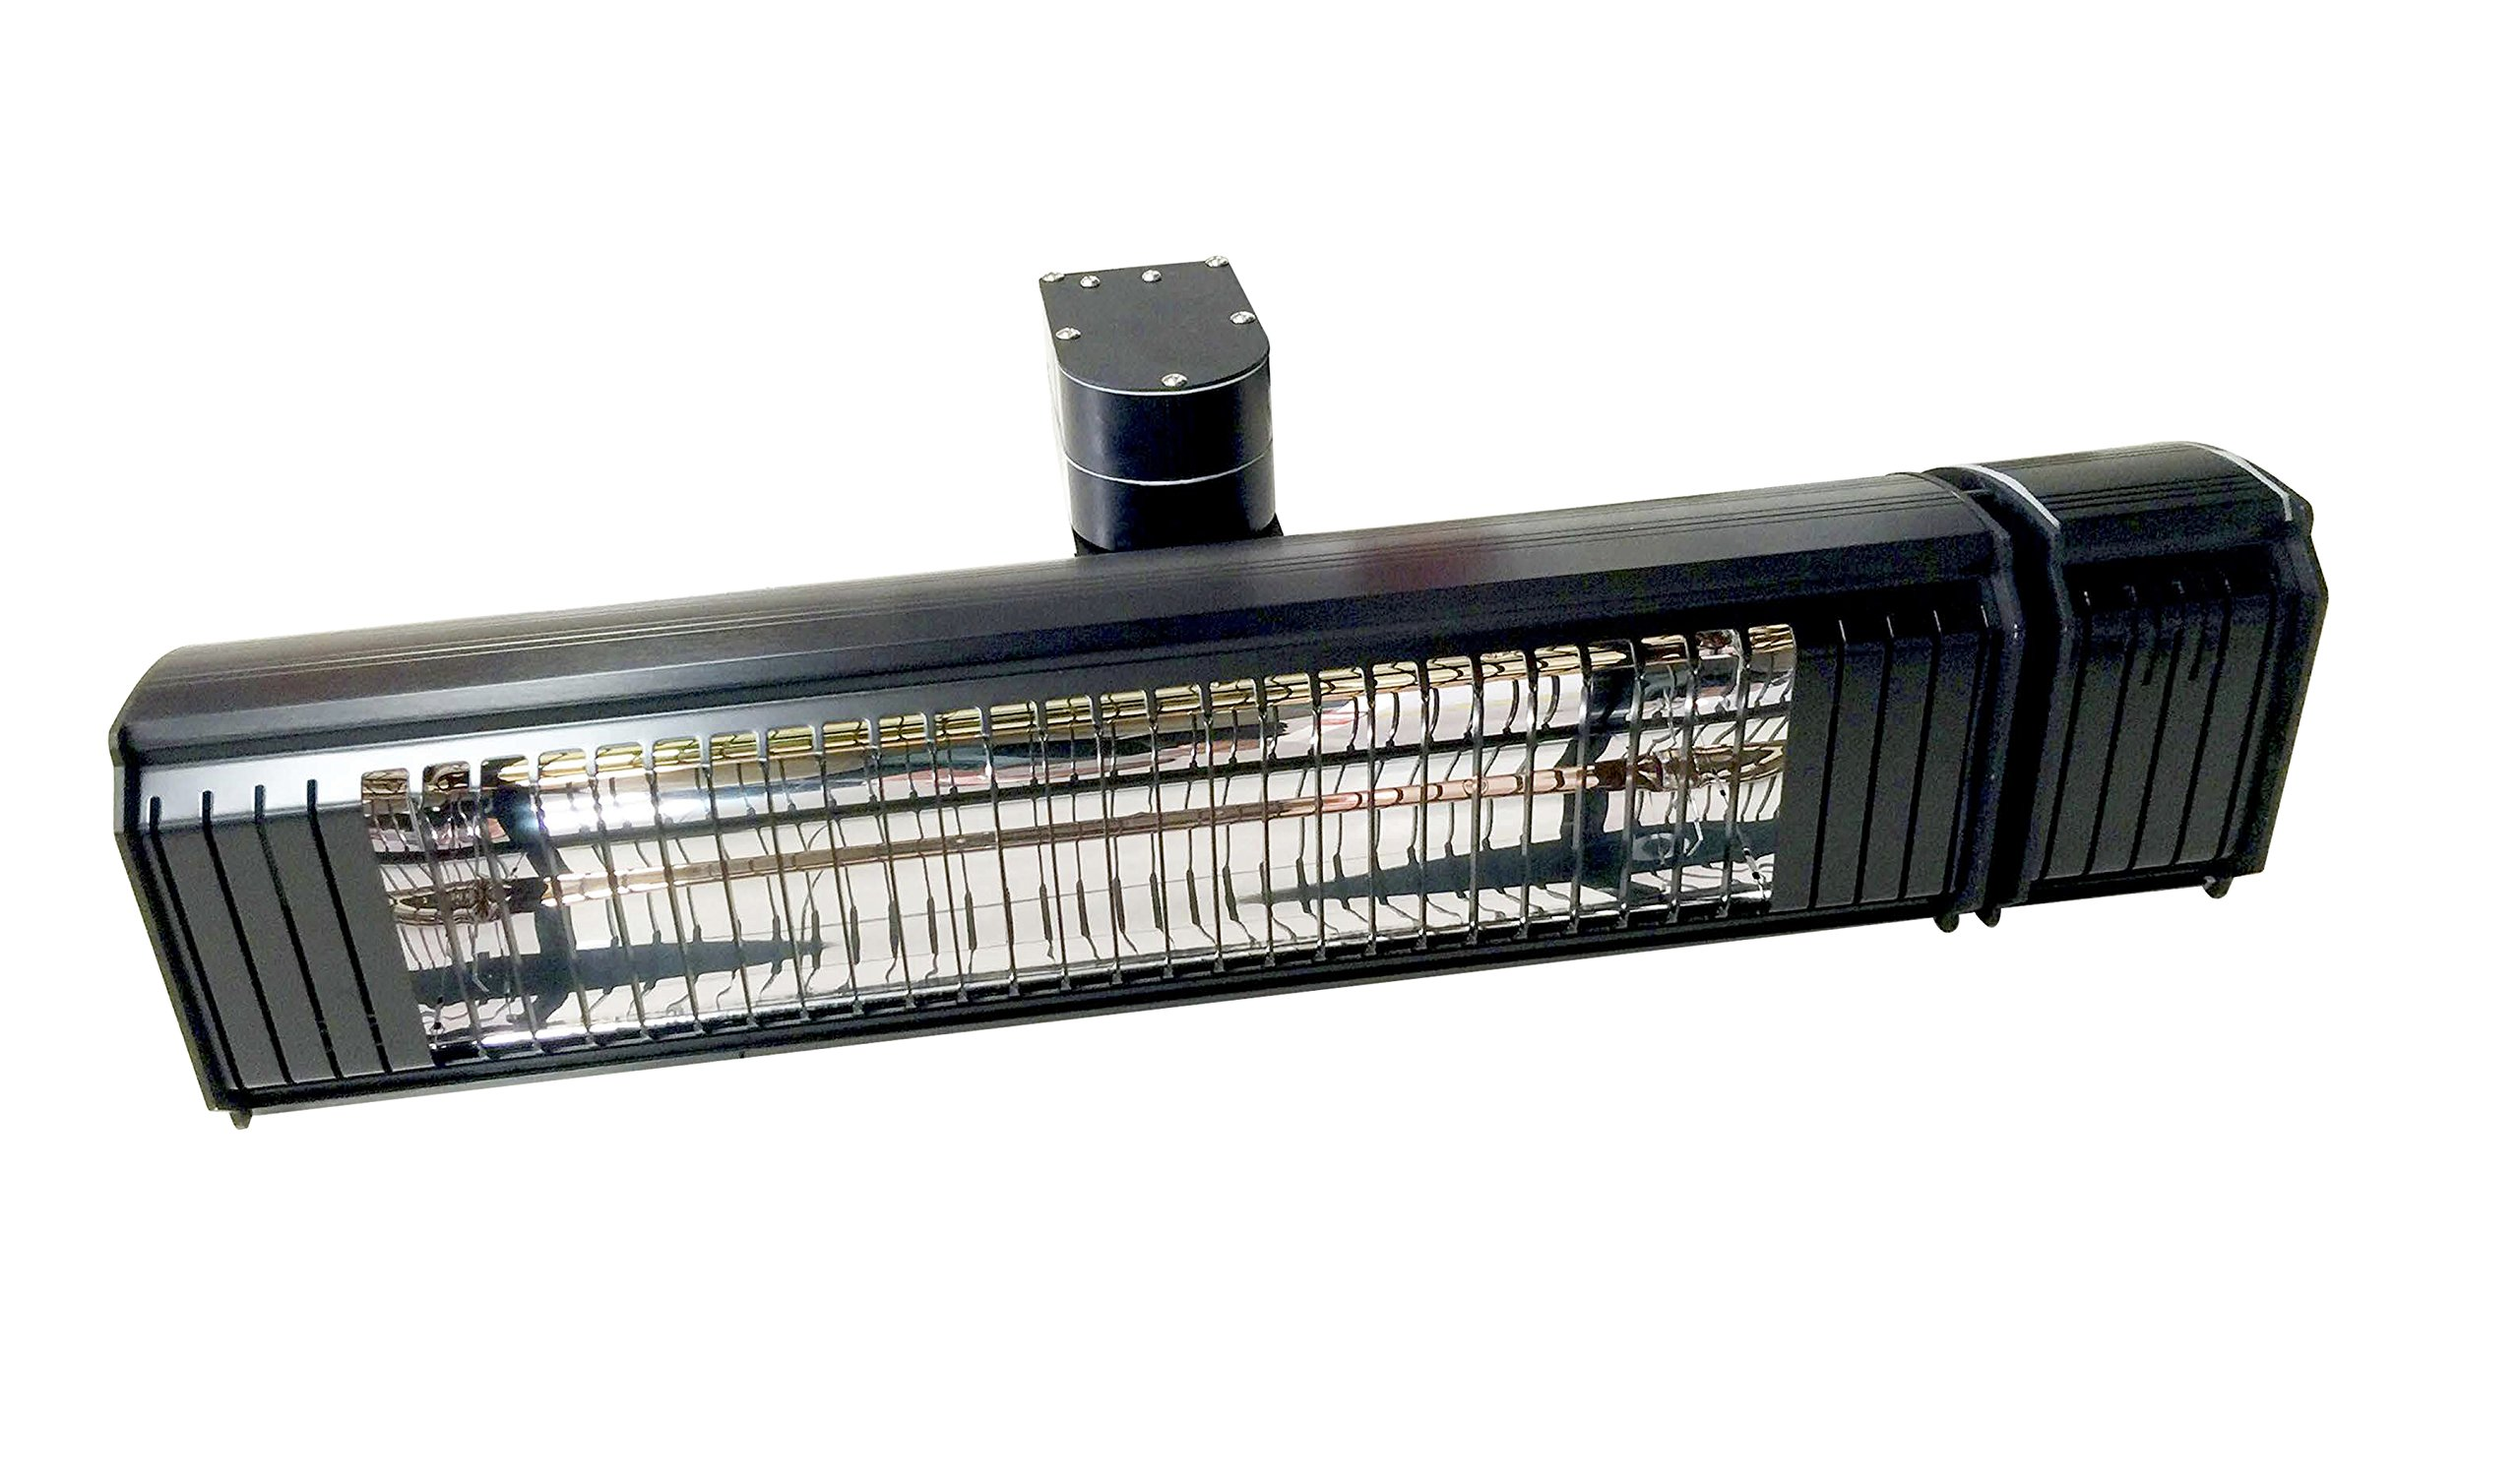 1500 Watt Infrared heater with full up and down and side to side adjustability. Remote controlled Wall Mount Heater Indoor/Outdoor, Commercial/Residential